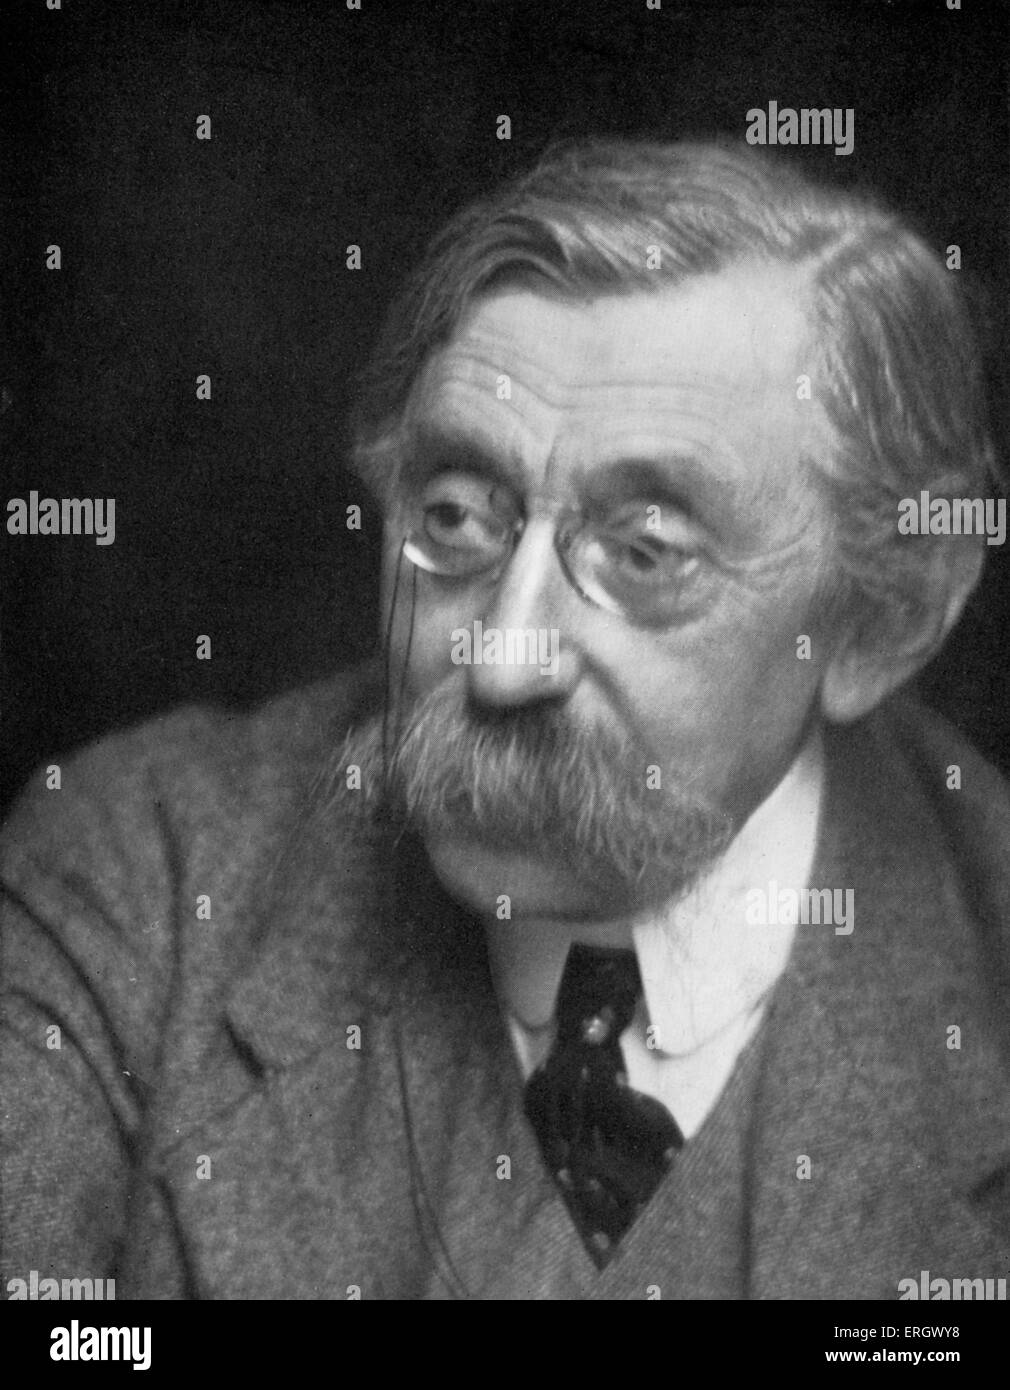 Emile Verhaeren  Belgian poet who wrote in the French language, and one of the chief founders of the school of Symbolism. - Stock Image